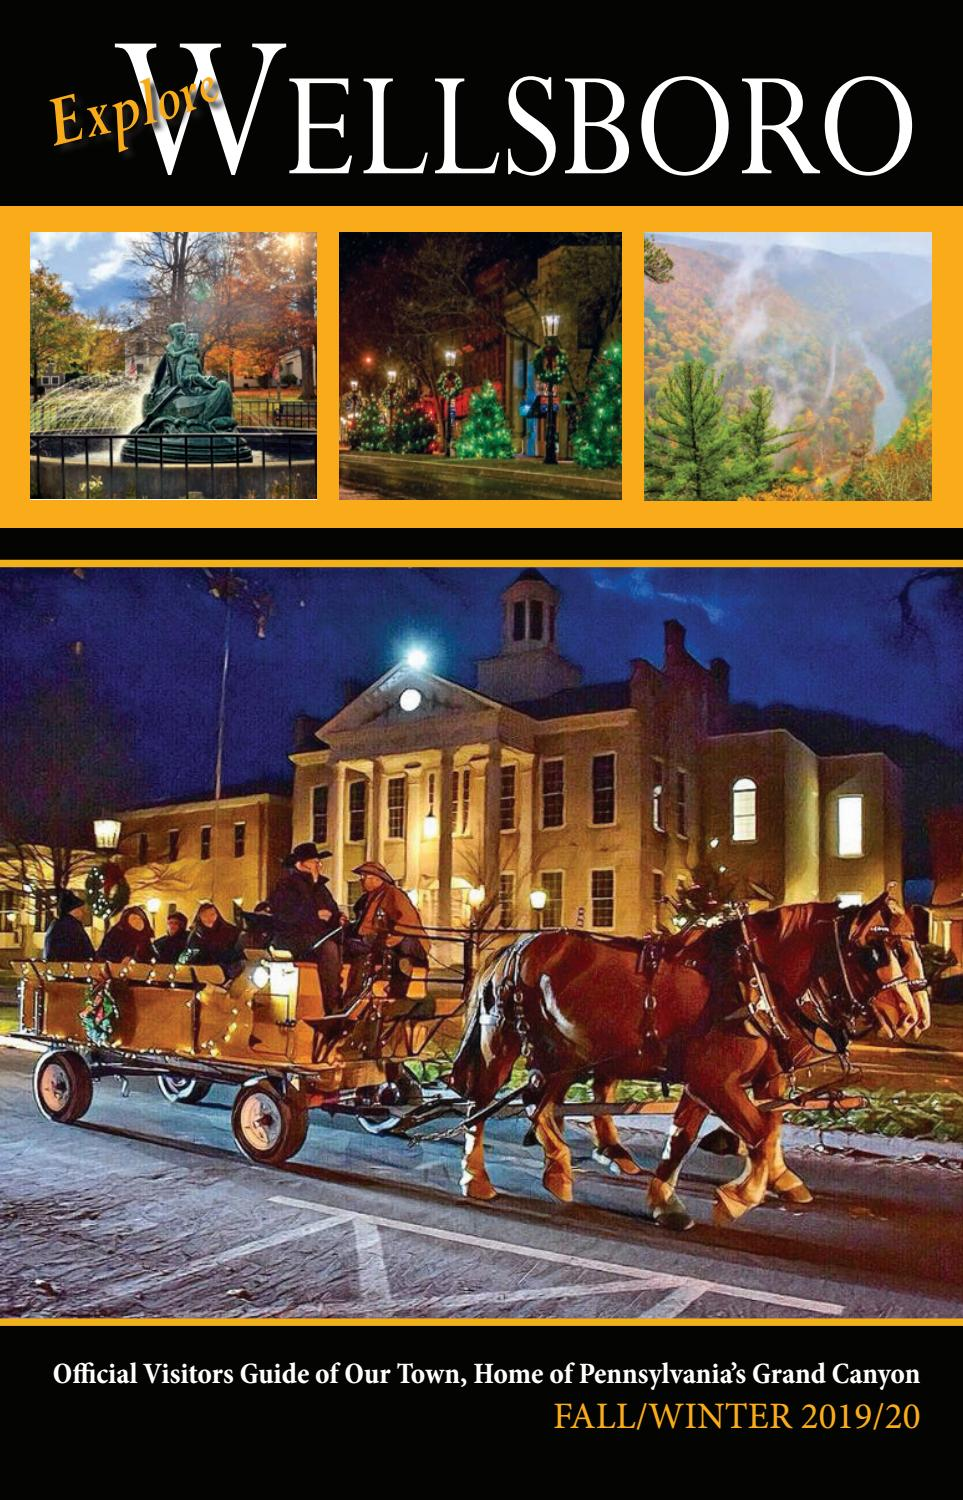 Official Start Of Fall 2020.Explore Wellsboro Fall Winter 2019 2020 By Mountain Home Issuu